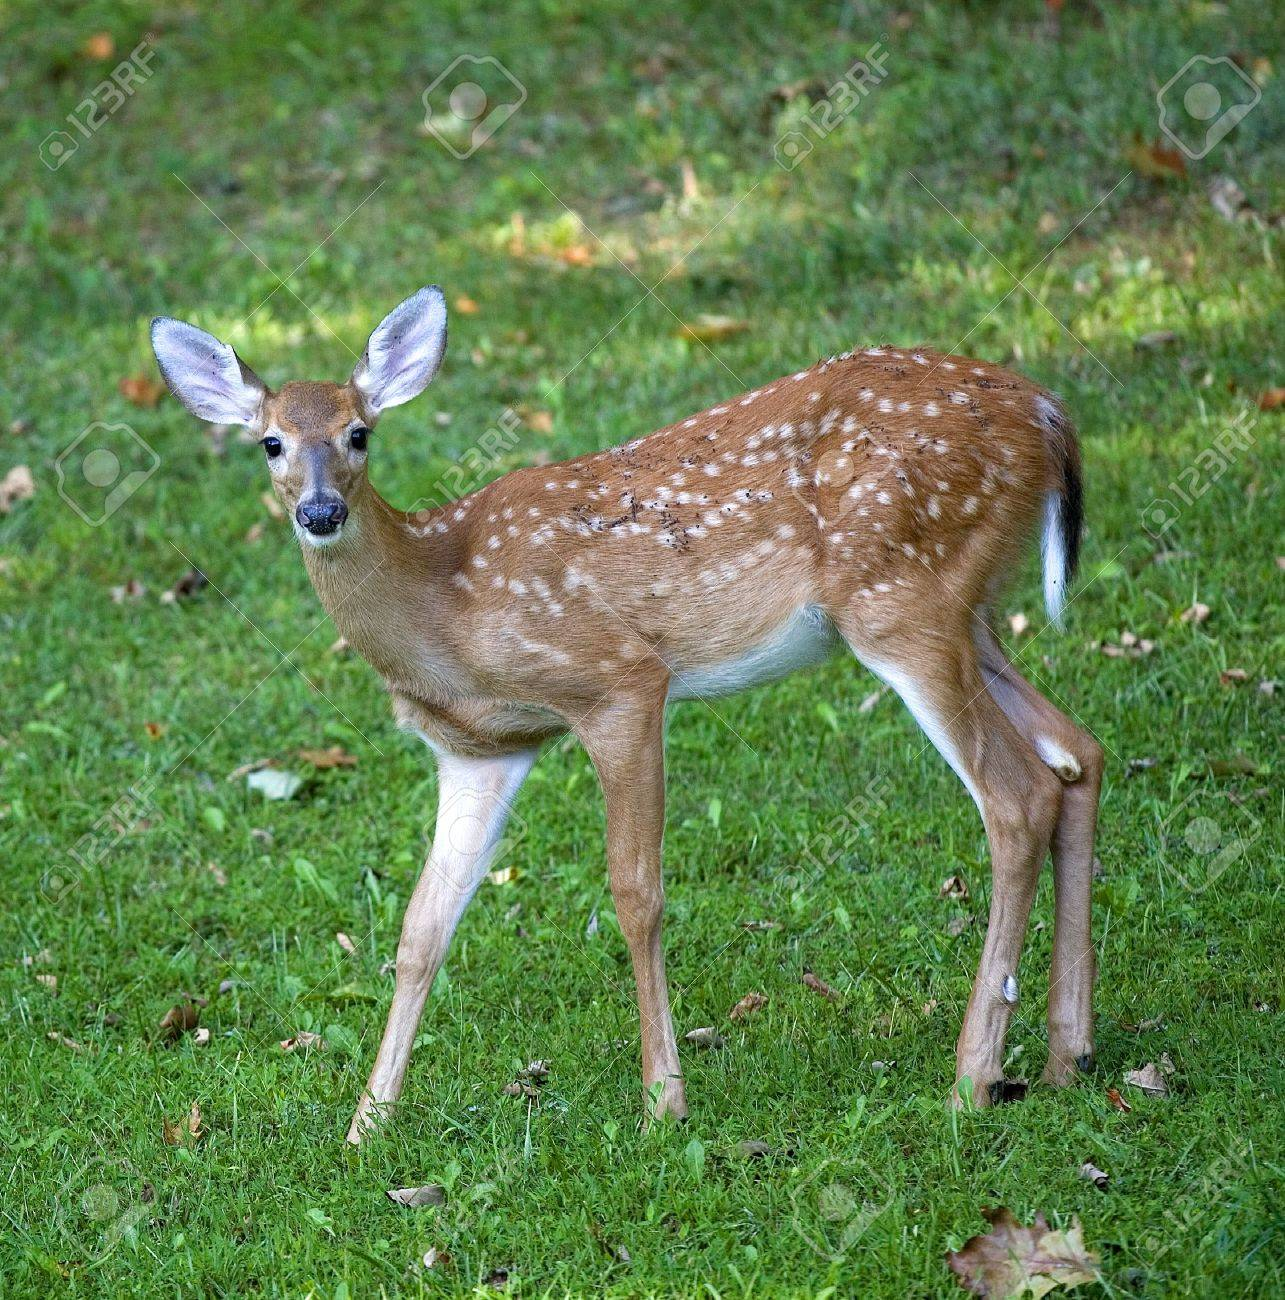 Whitetail deer fawn out in the shade on a grassy field Stock Photo - 8002995